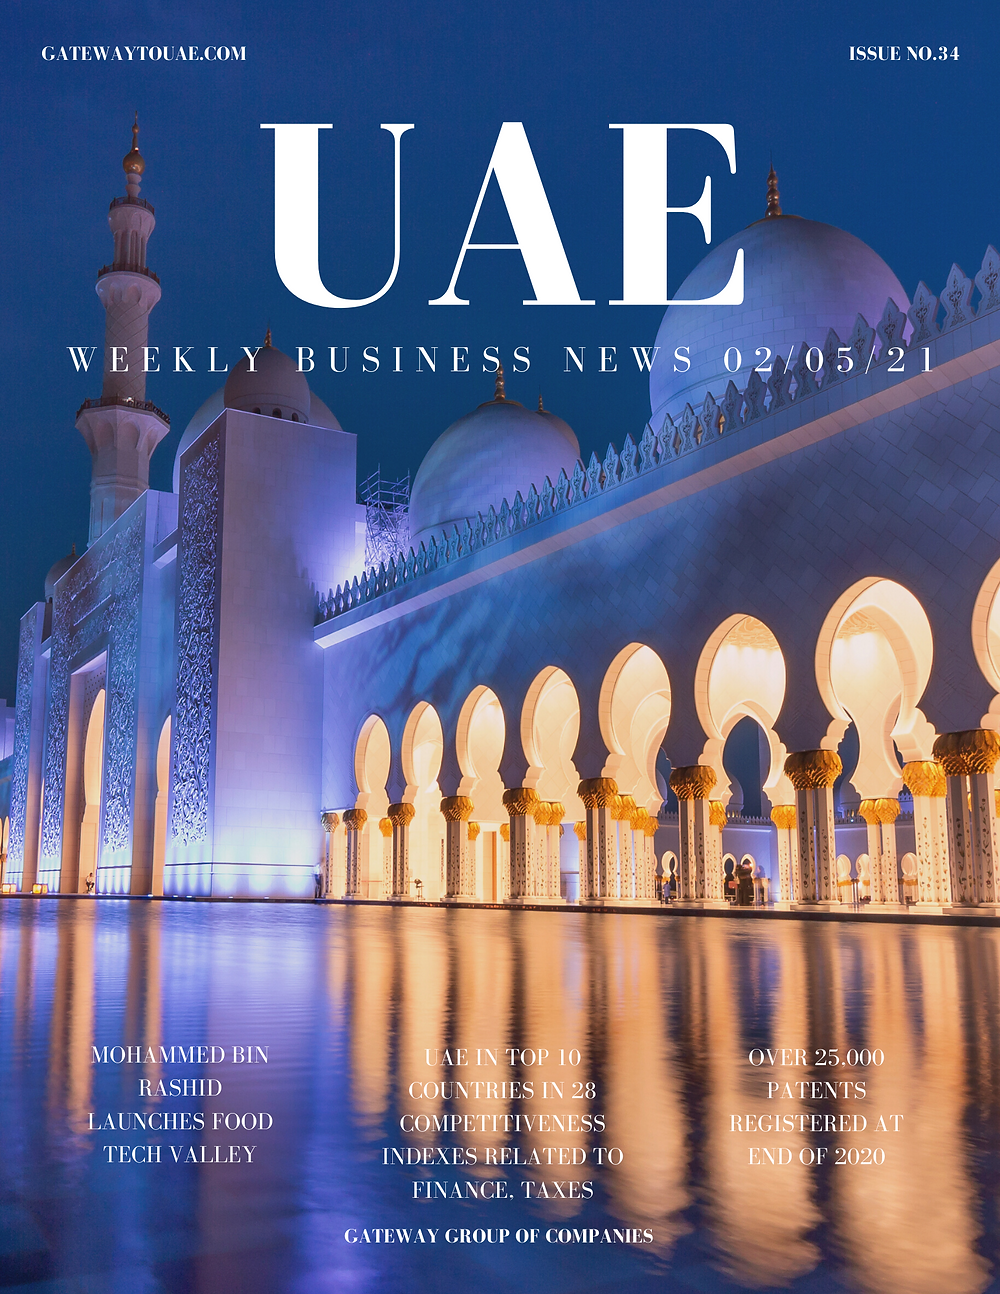 UAE weekly business news headlines 2nd May 2021 Issue 34 Gateway Group Of Companies Abu Dhabi Dubai weekly magazine company formation business setup local sponsor service agent visas company formation authority trade licence license